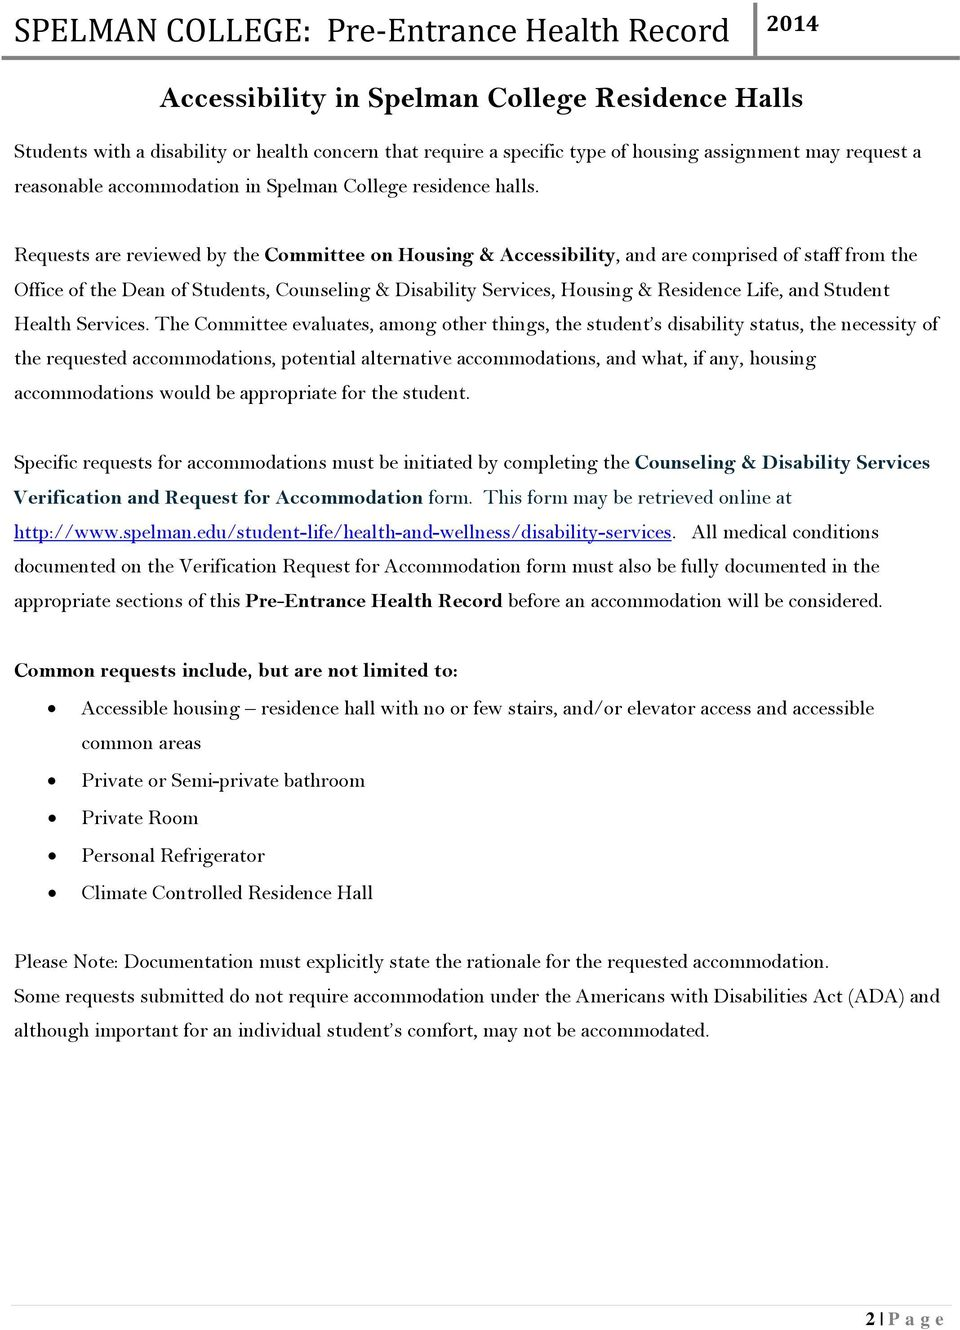 Requests are reviewed by the Committee on Housing & Accessibility, and are comprised of staff from the Office of the Dean of Students, Counseling & Disability Services, Housing & Residence Life, and